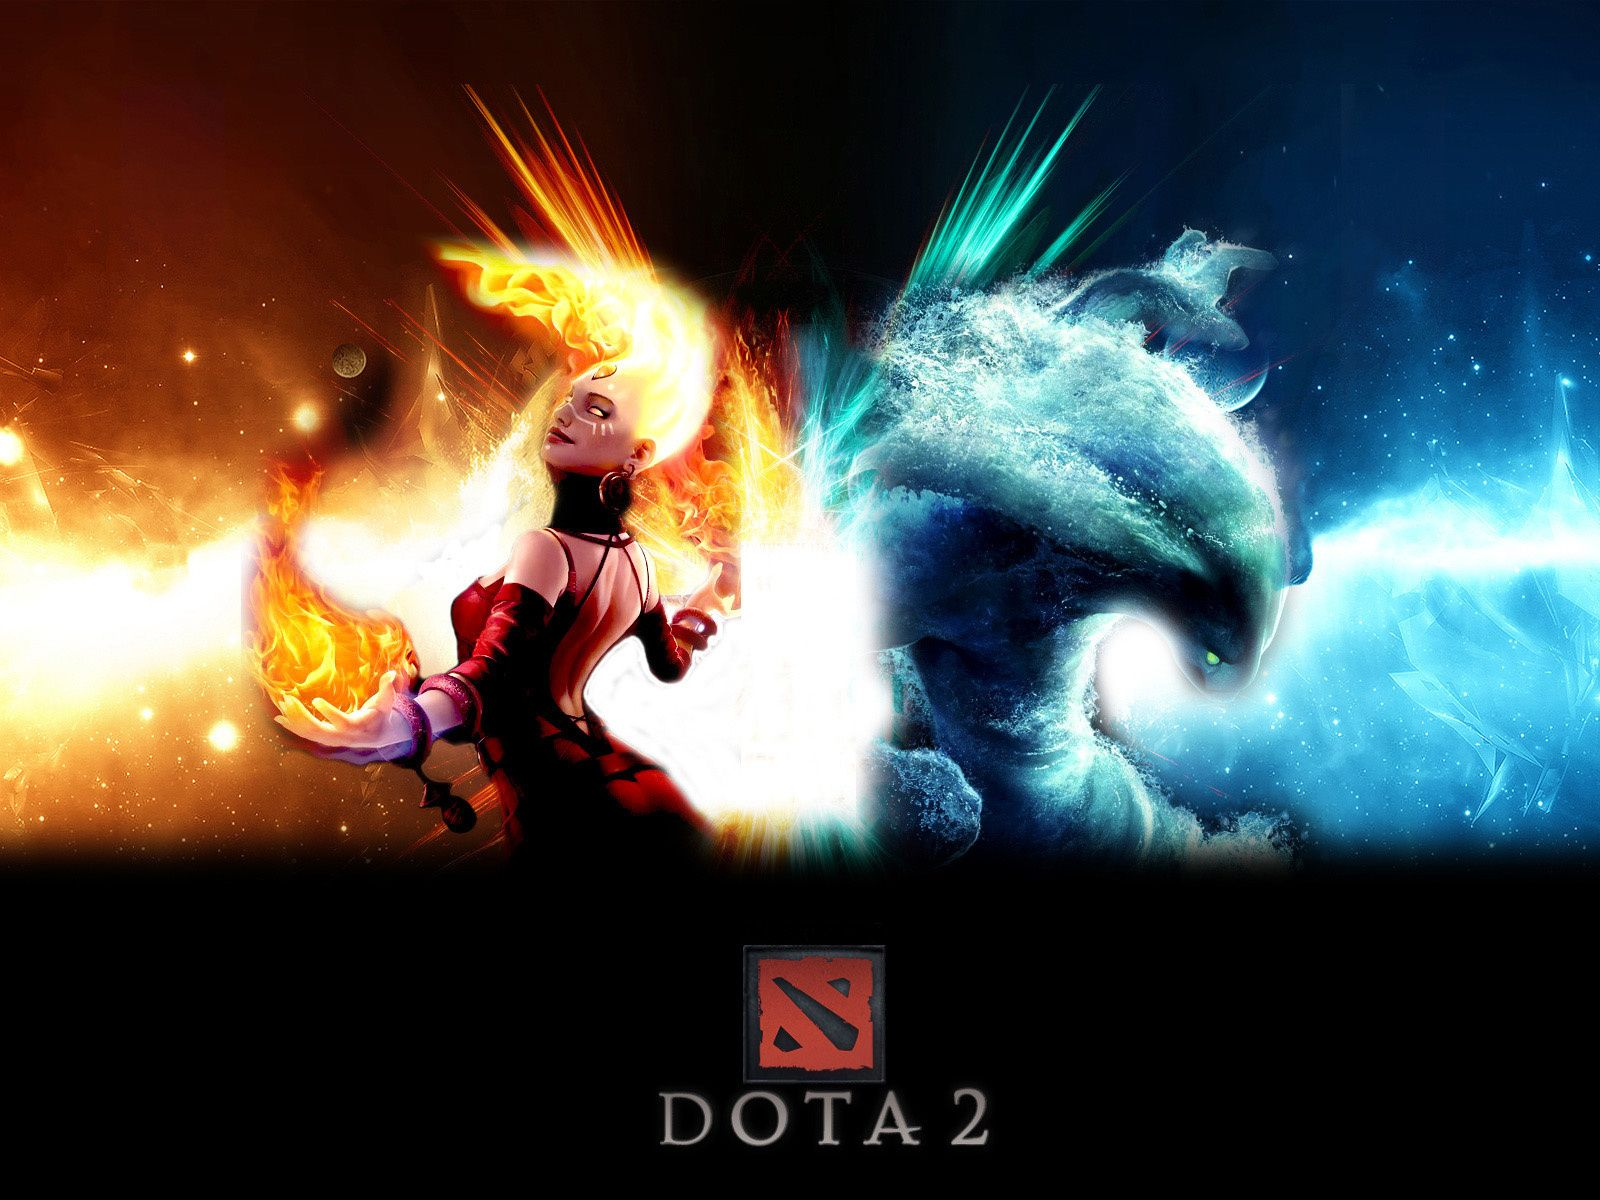 characters from Dota 2